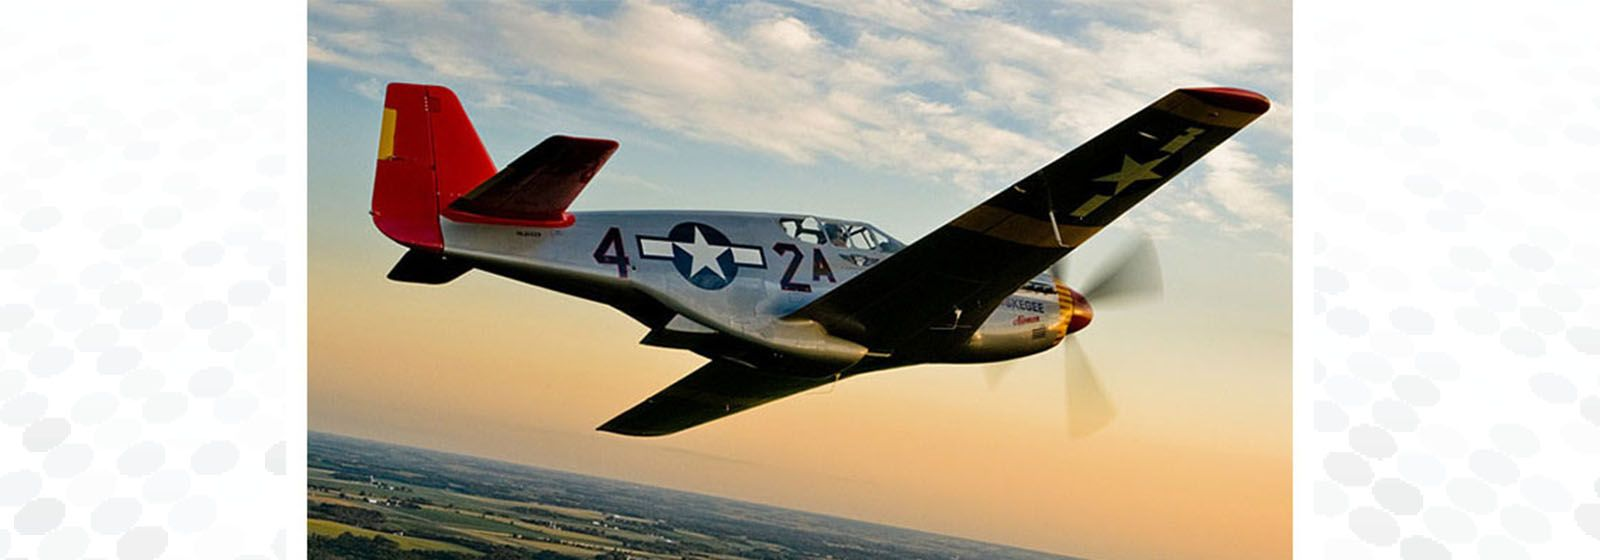 Tuskegee Airman Neblett took his dreams to the sky